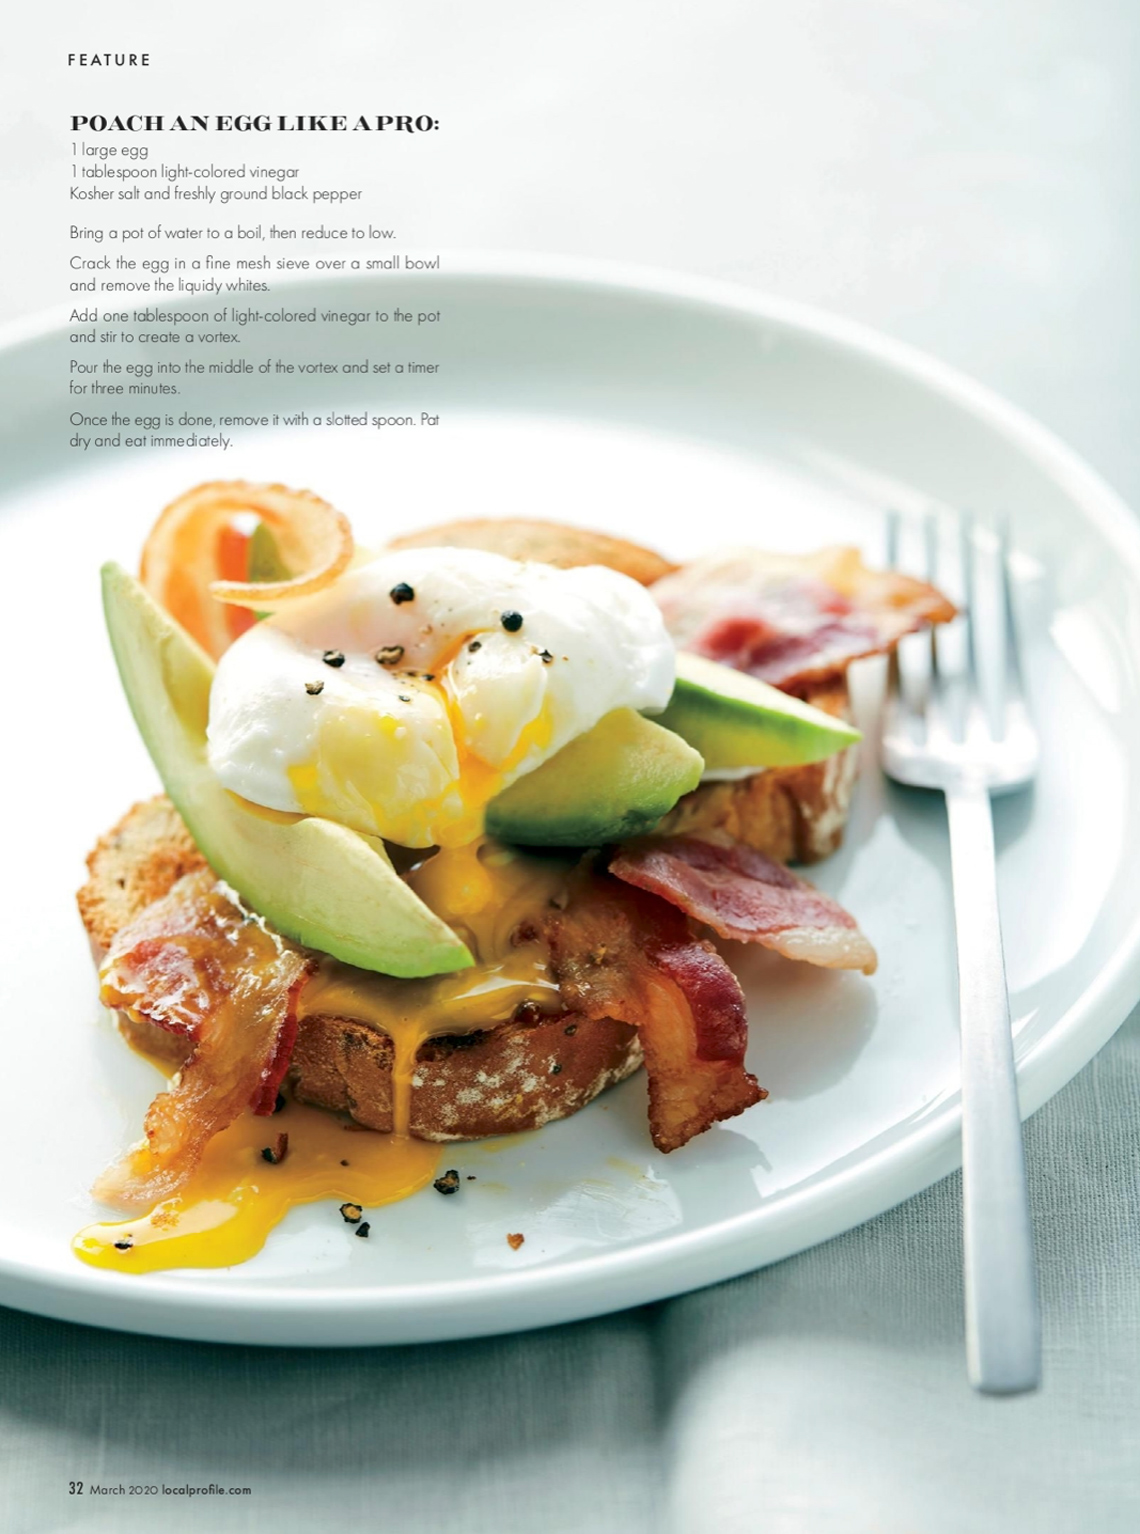 Poached-Egg-Dish